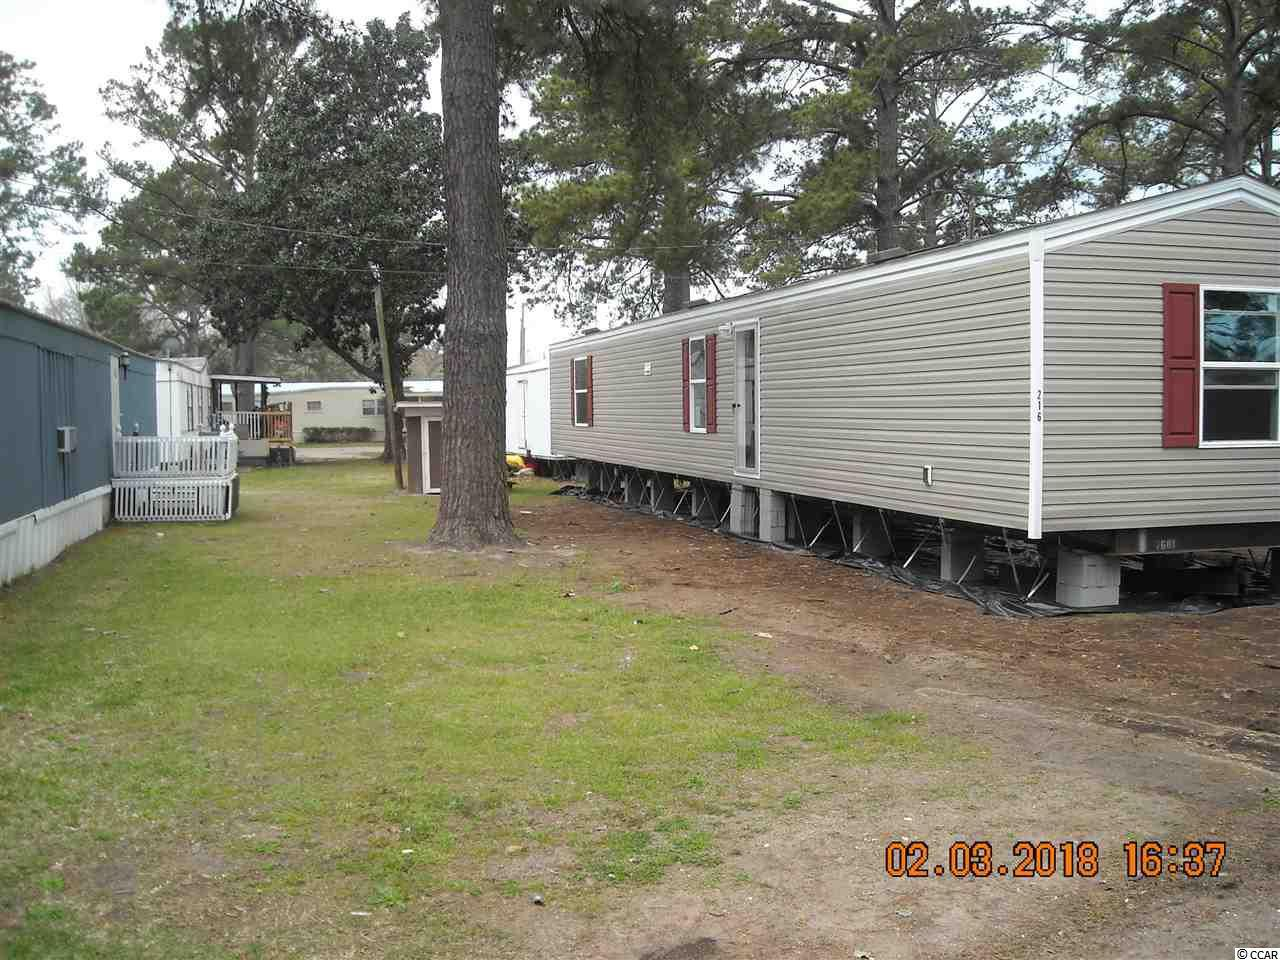 Mobile Home Parks Myrtle Beach Sc on mobile home parks san antonio, mobile home parks north carolina, mobile home parks louisville, mobile home parks oklahoma city, mobile home parks indianapolis, mobile home parks las vegas, mobile home parks salem,